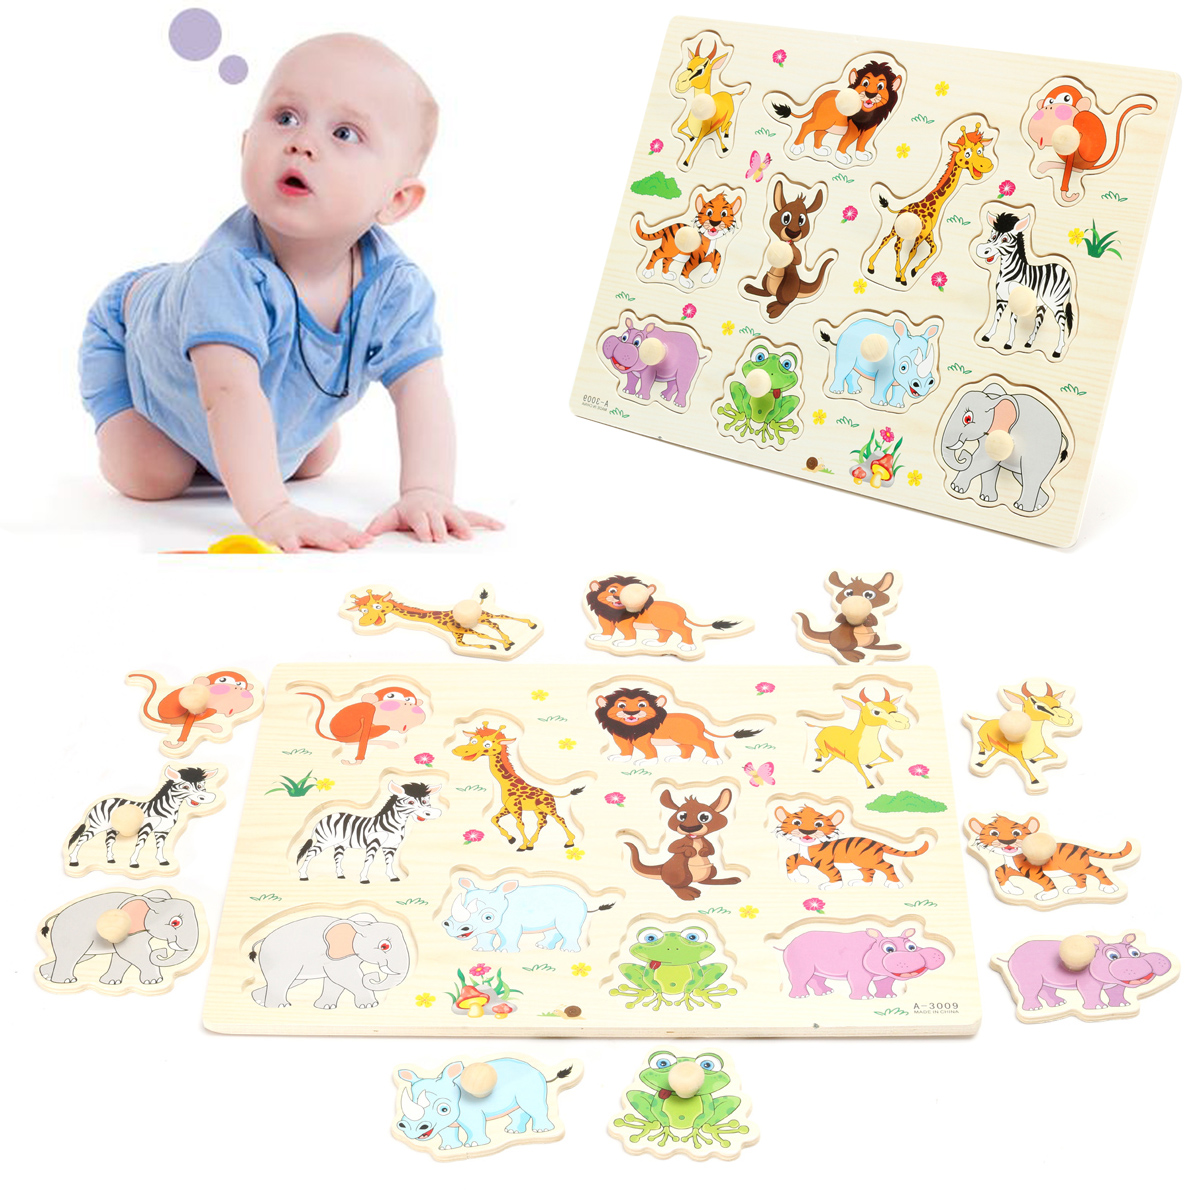 Wooden Zoo Animal Jigsaw Puzzle Toy Children Kids Baby Early Learning Educational Plate... by